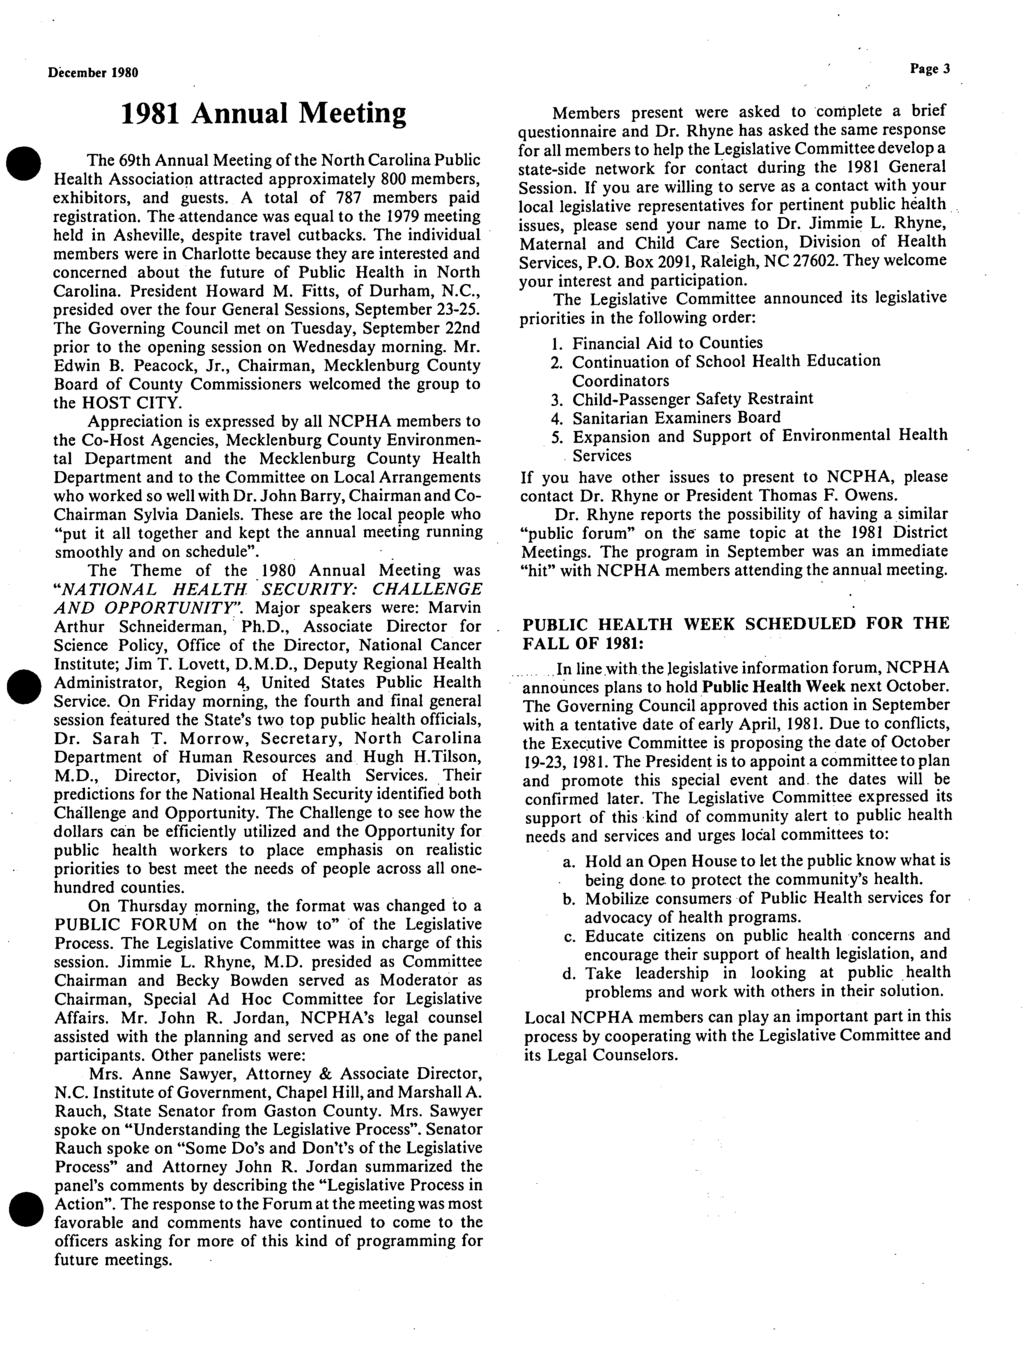 December 1980 Page 3 1981 Annual Meeting The 69th Annual Meeting of the North Carolina Public Health Association attracted approximately 800 members, exhibitors, and guests.